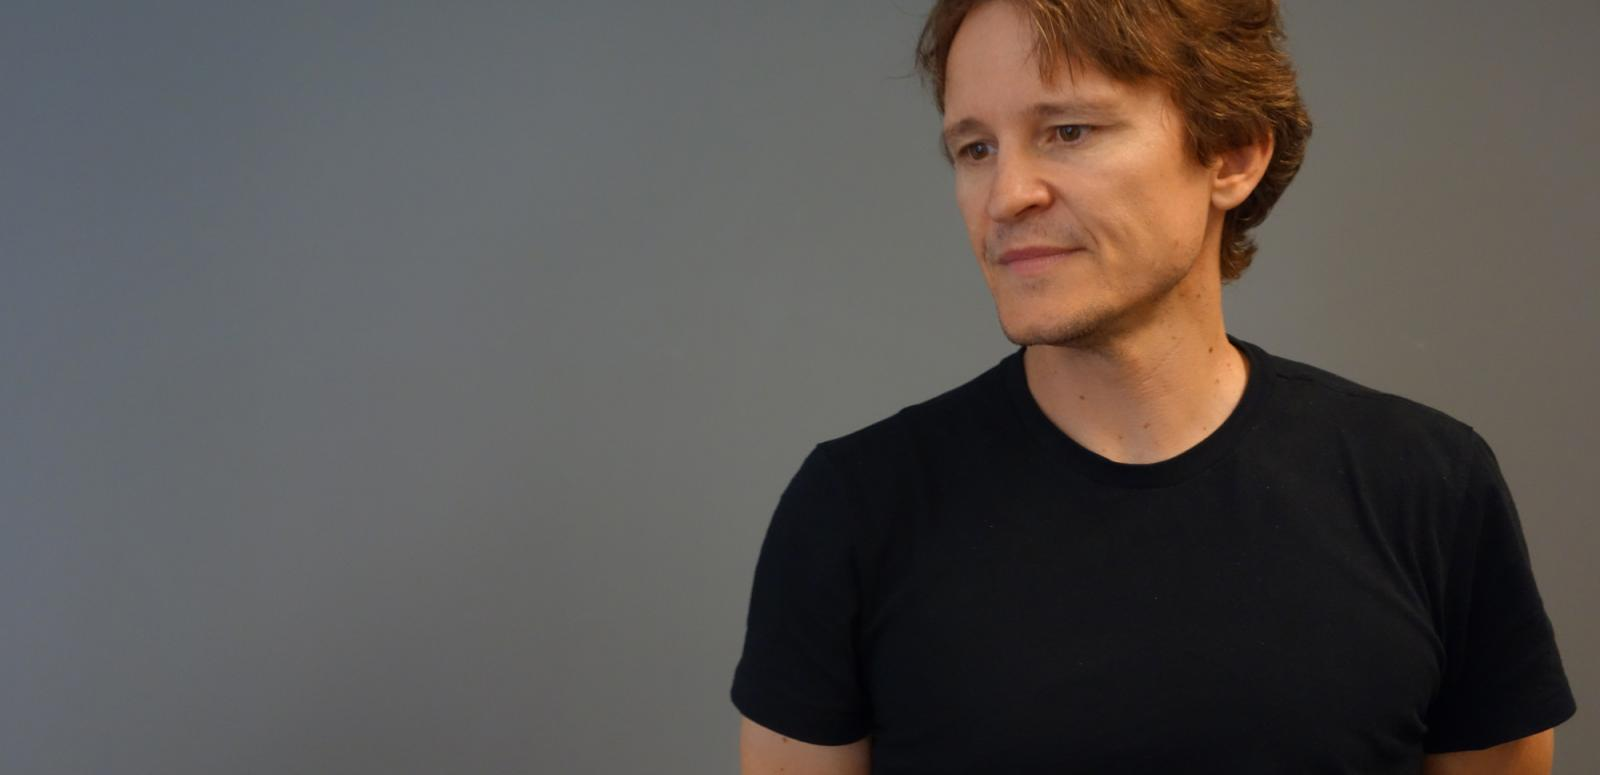 Damon Herriman Married life